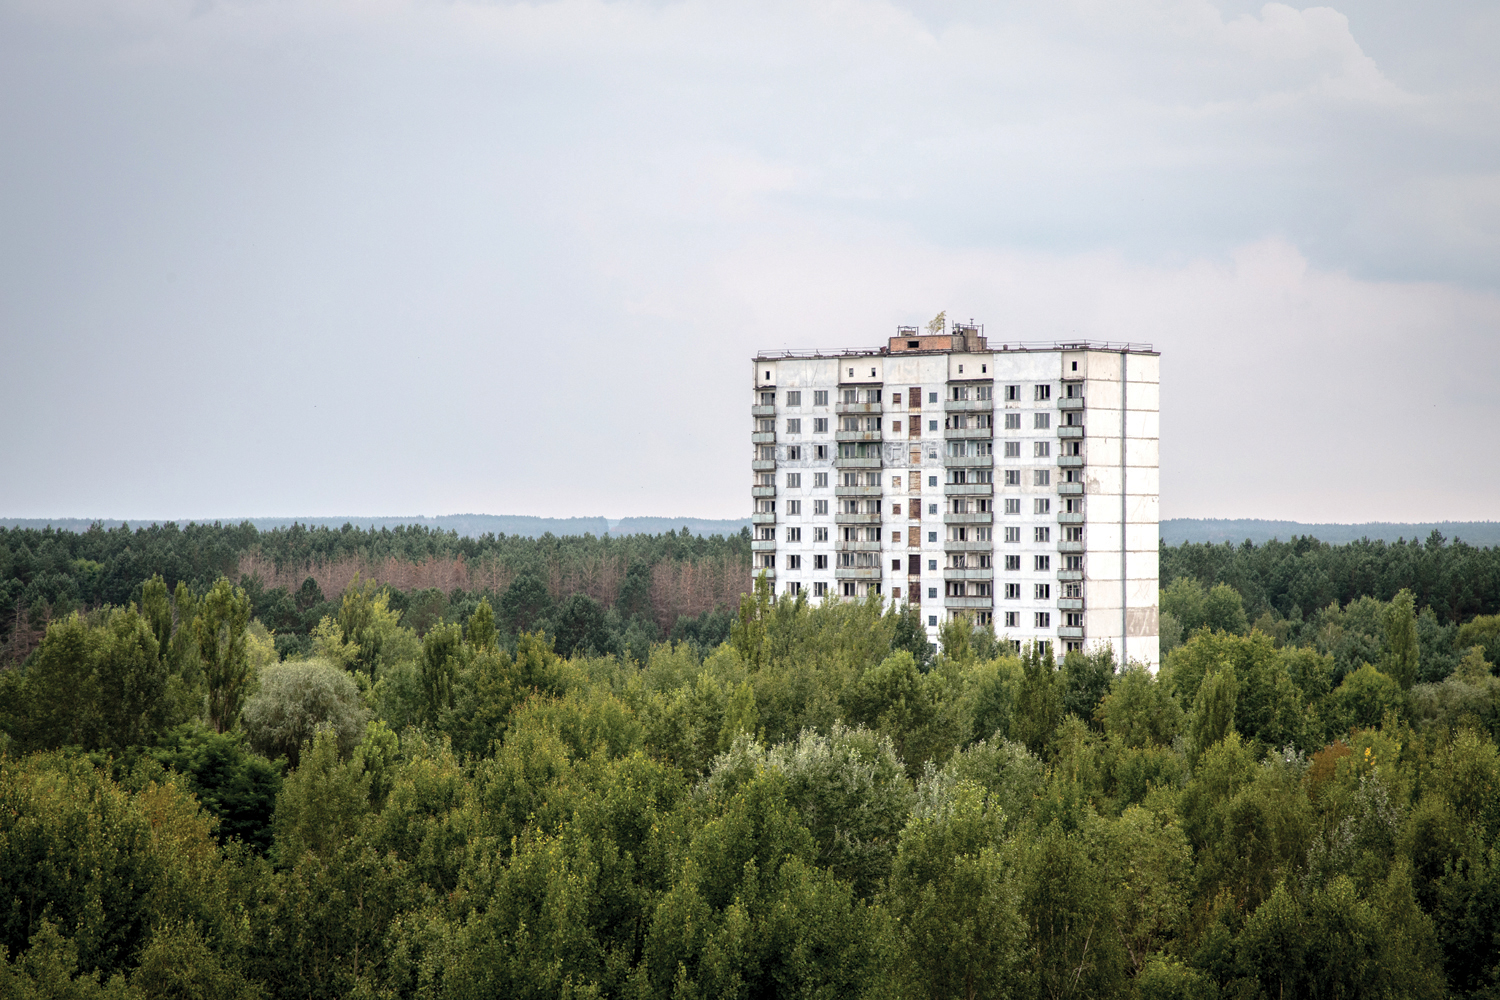 Residential building, Pripyat outskirts. The city is completely enveloped in a dense blanket of forest, blurring its former perimeters. © Darmon Richter / FUEL Publishing